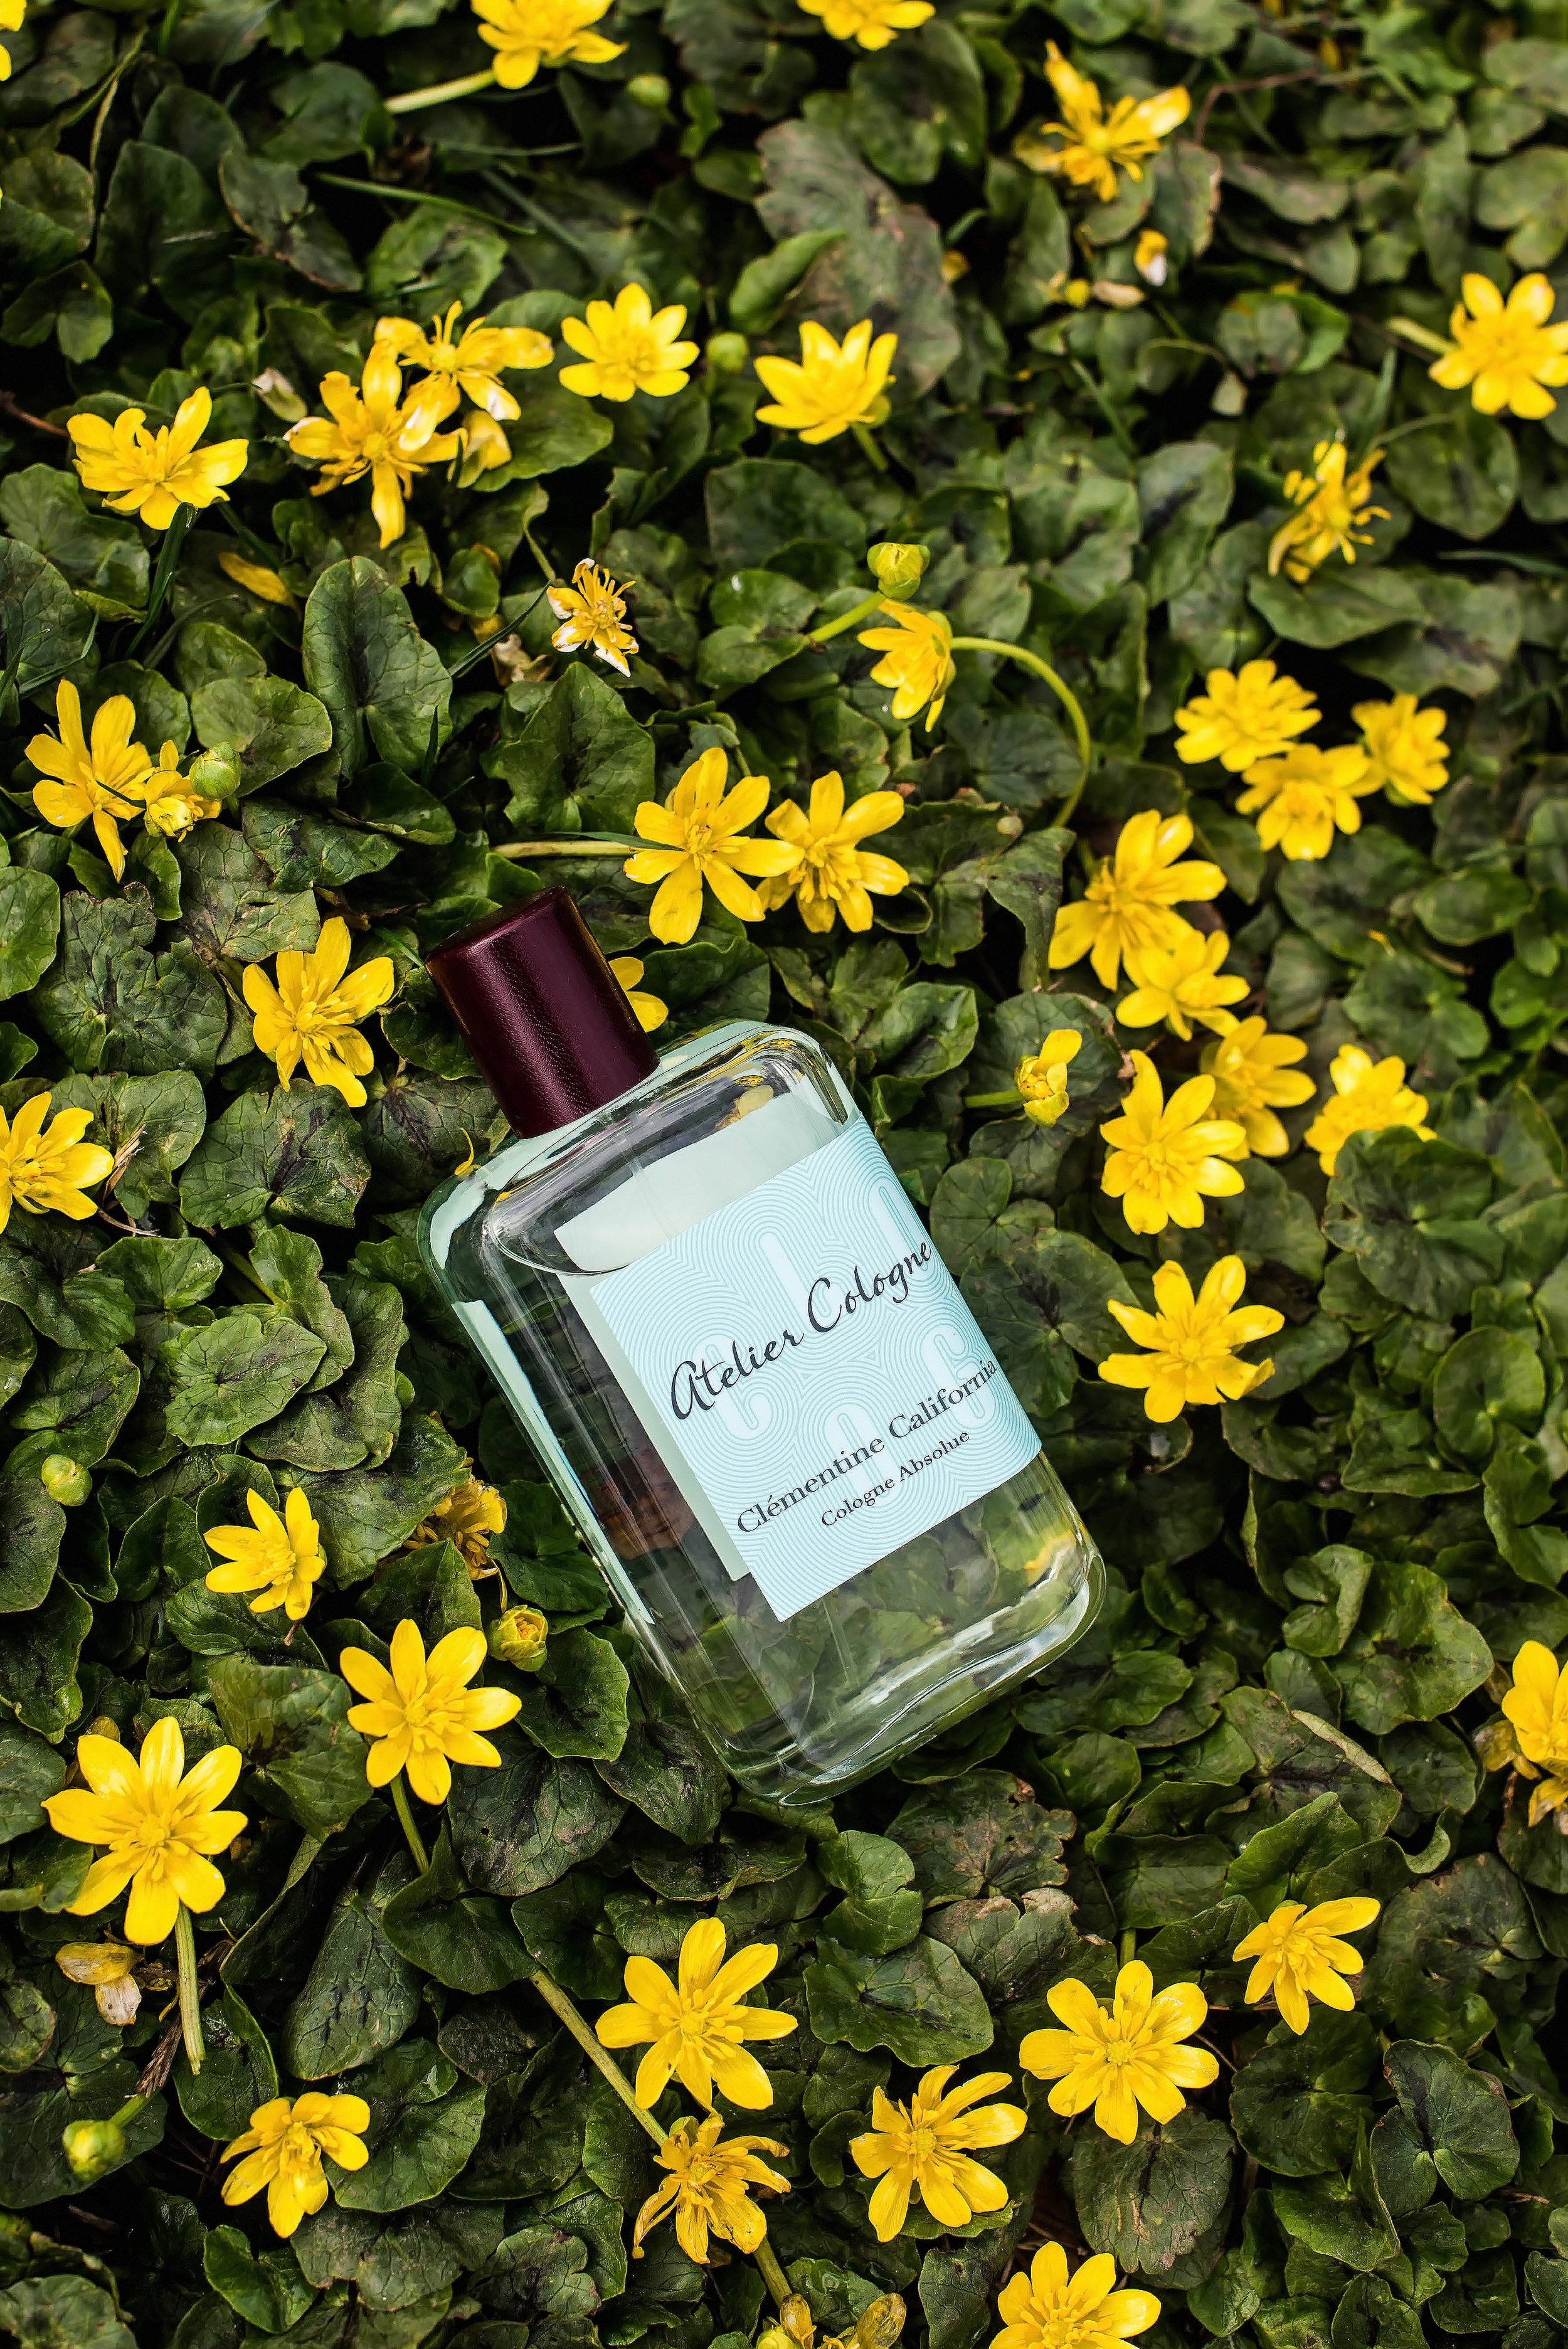 ROSE & IVY Journal Four New Fragrances for Spring Atelier Cologne Clementine California